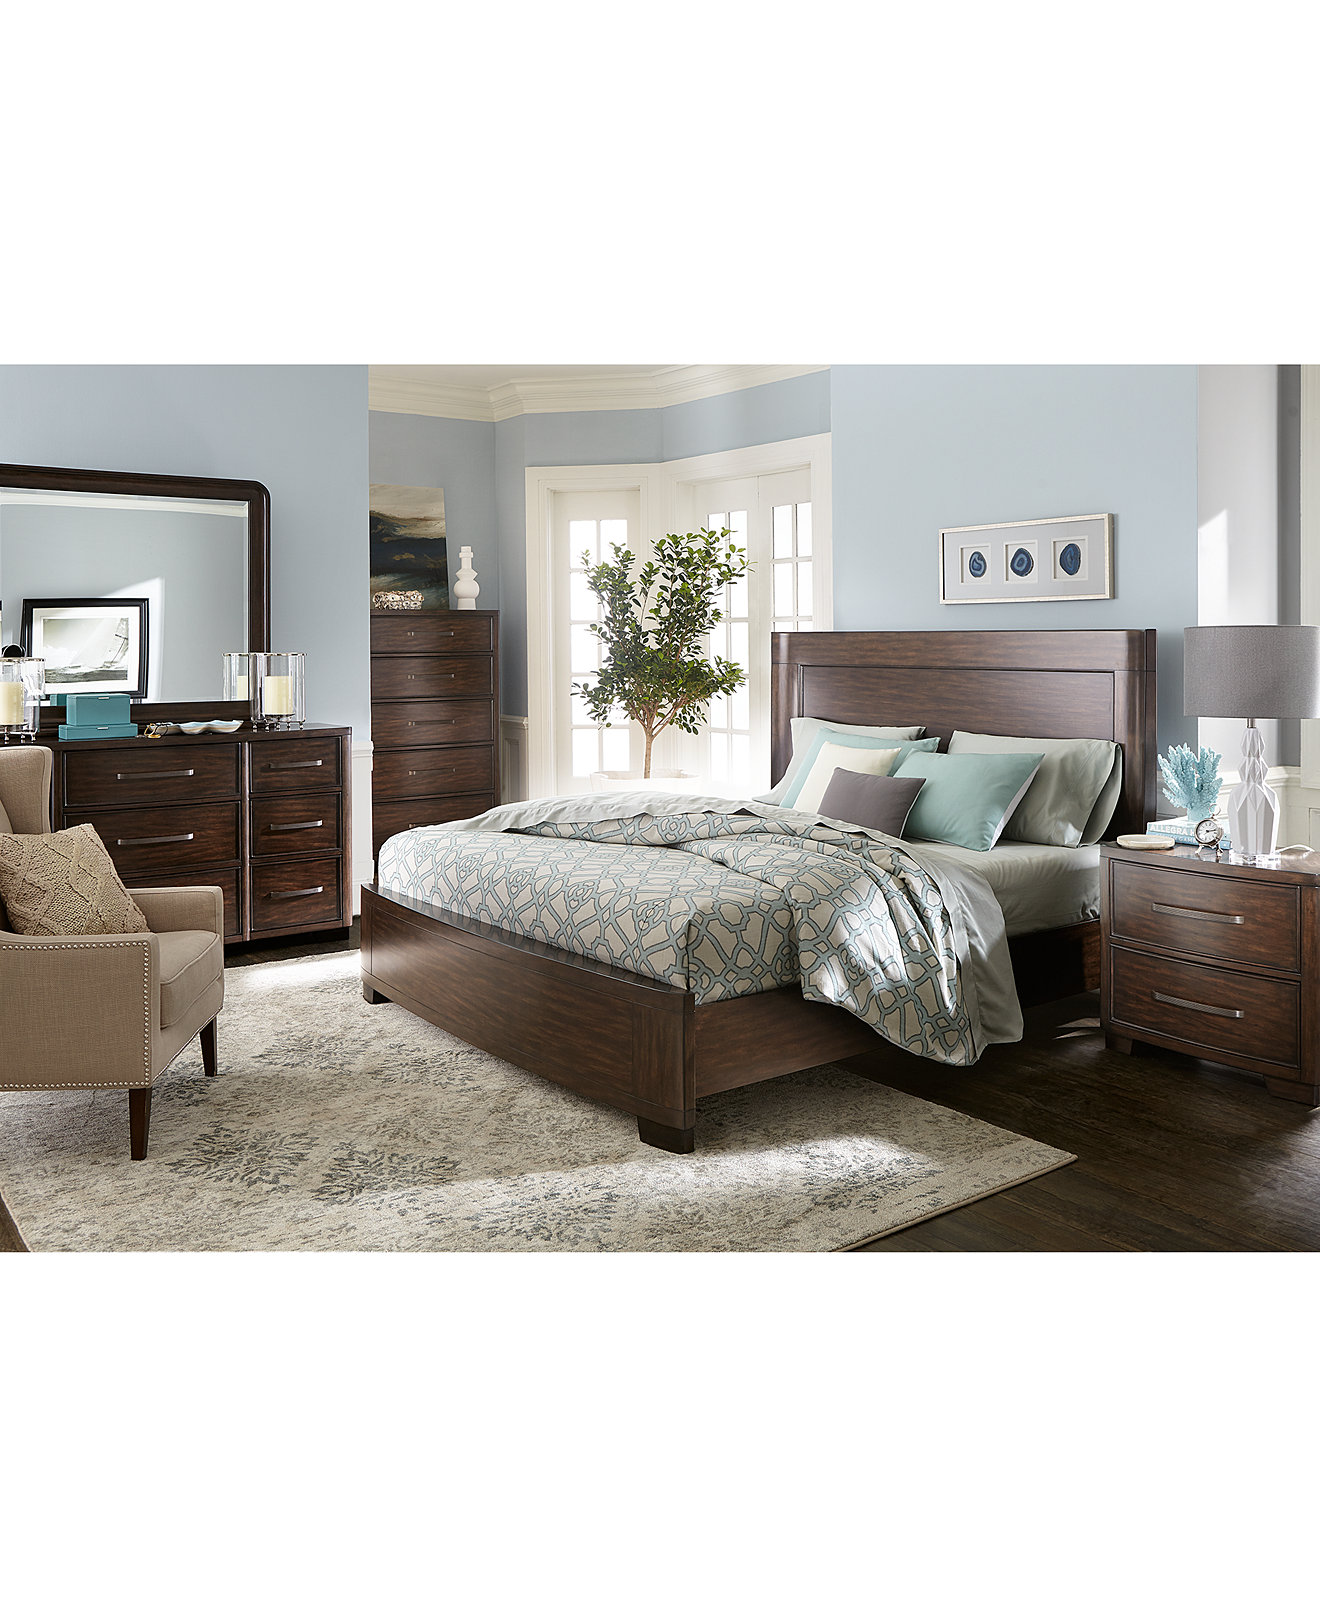 Fairbanks Bedroom Furniture Collection, Only at Macy\'s - Furniture ...